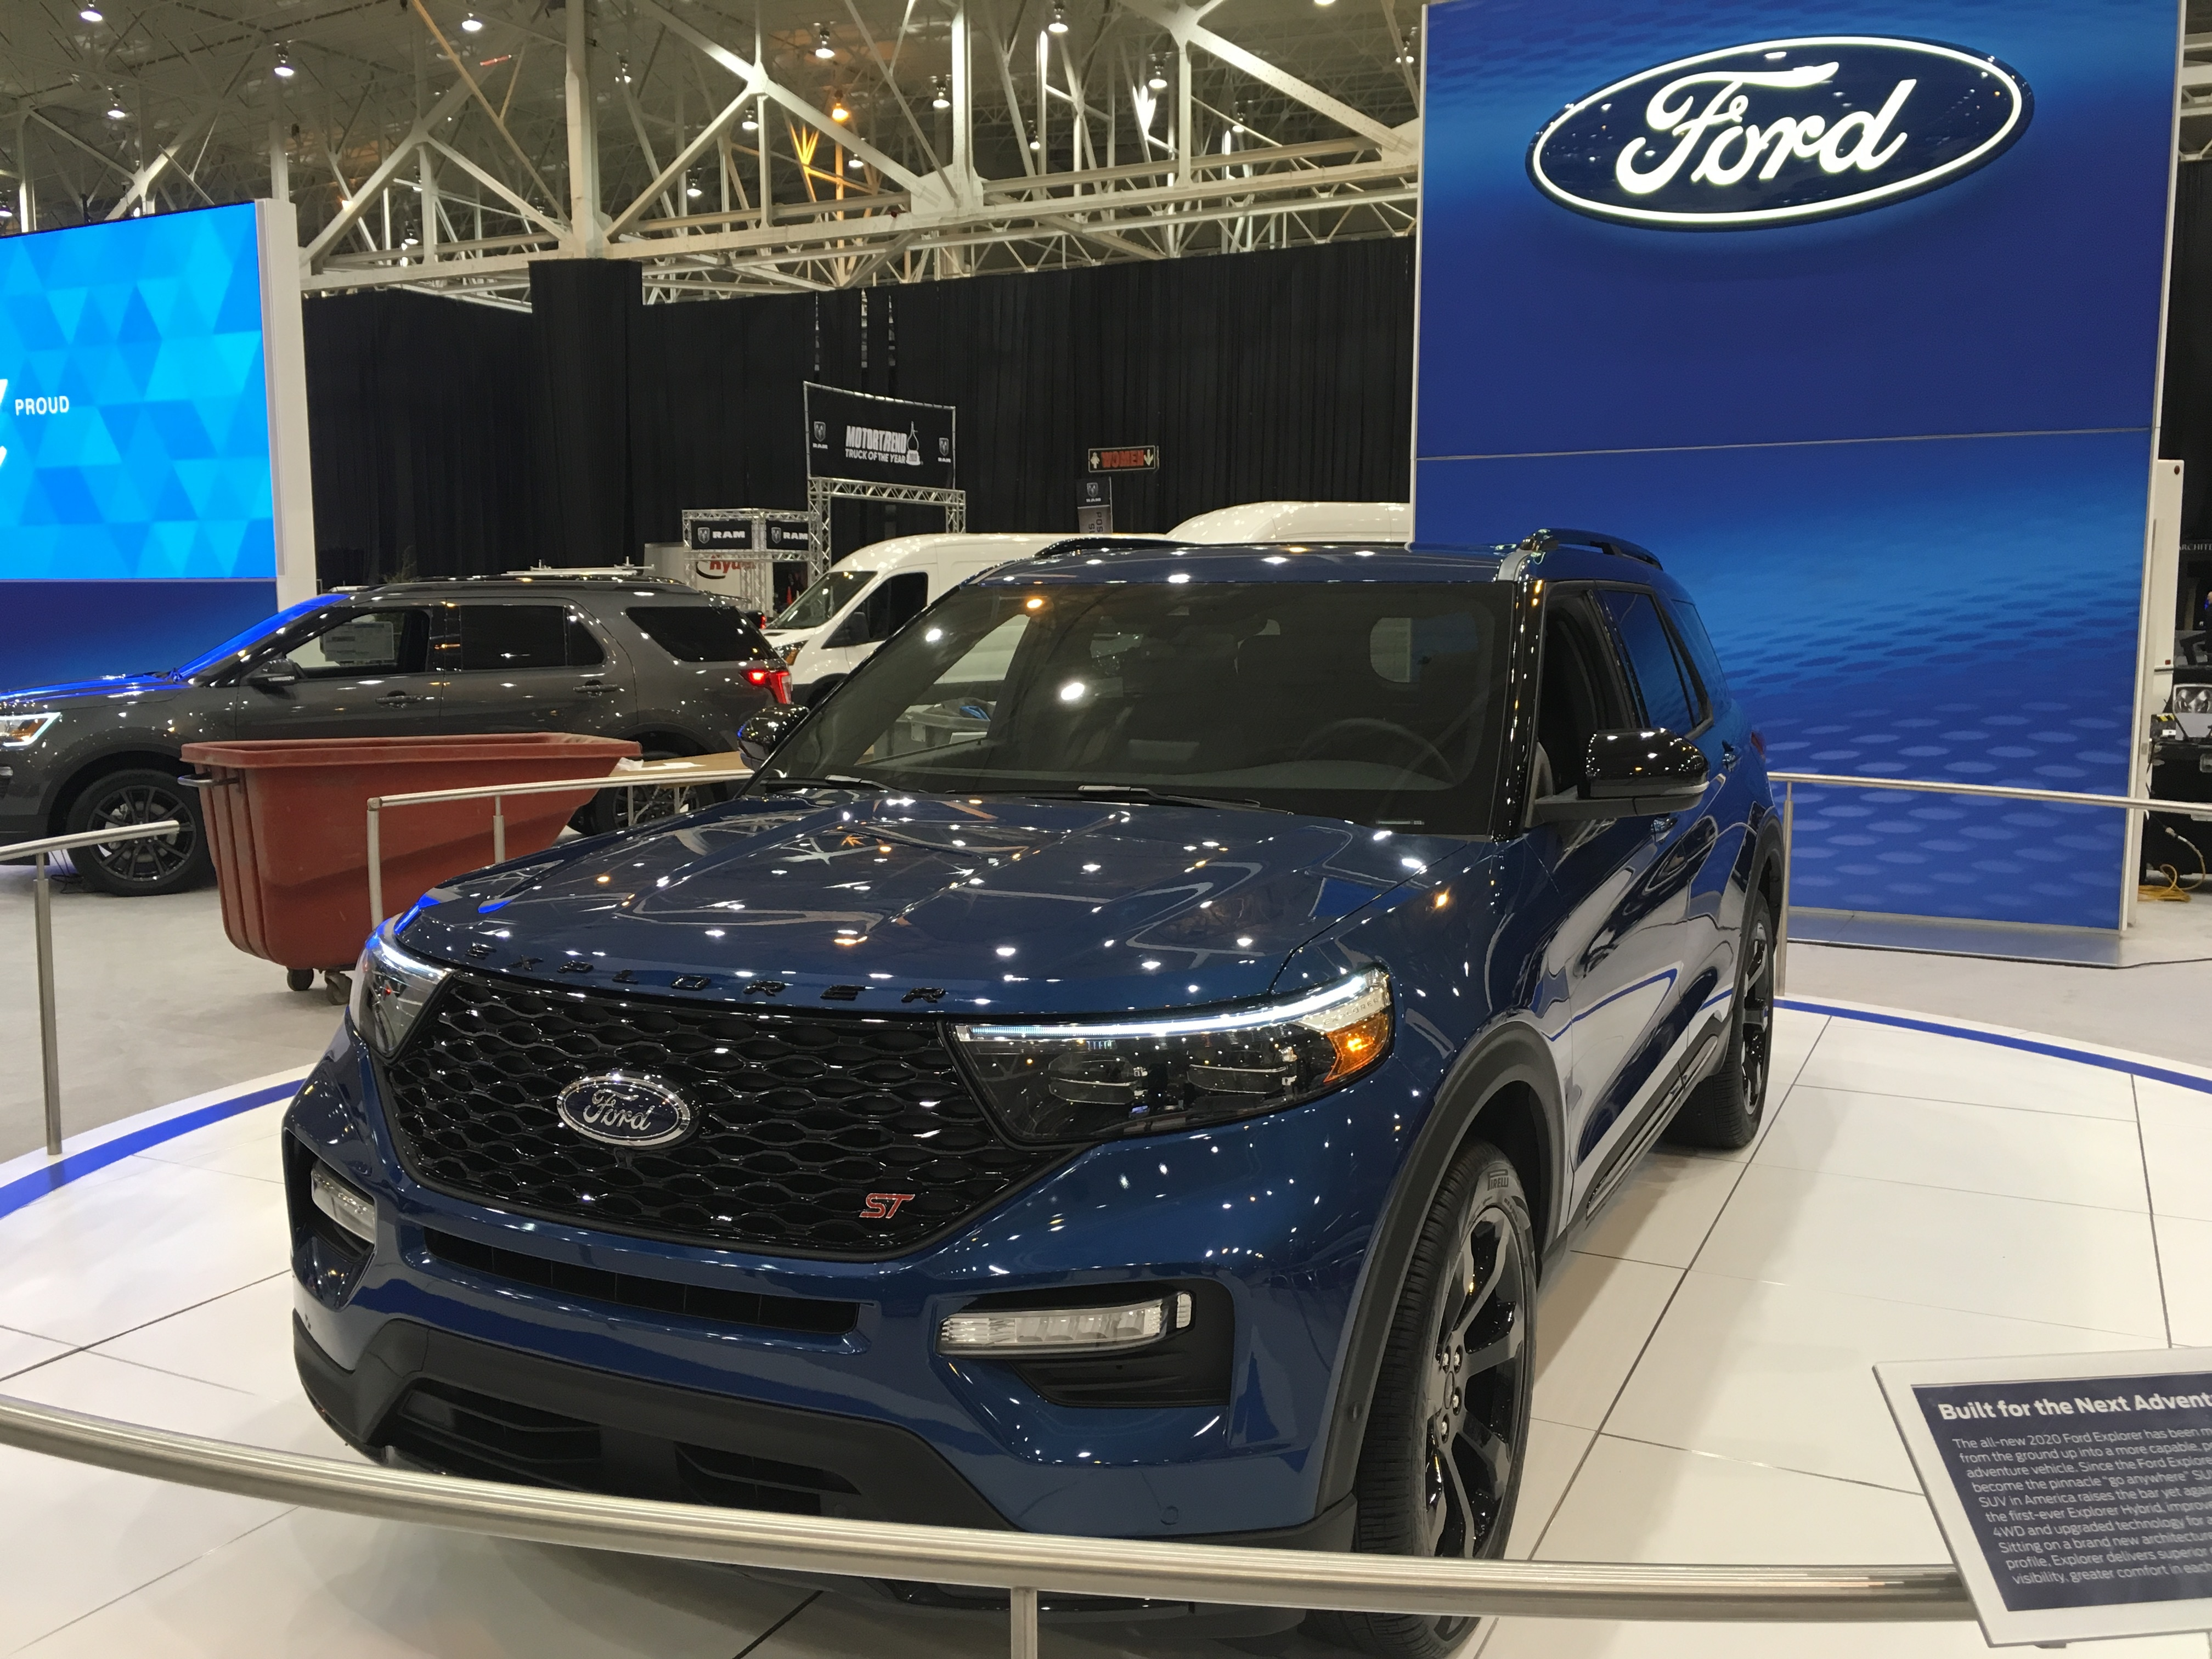 Auto Show 2020 Cleveland.Real Photos Of The 2020 Ford Explorer George Waikem Ford Inc